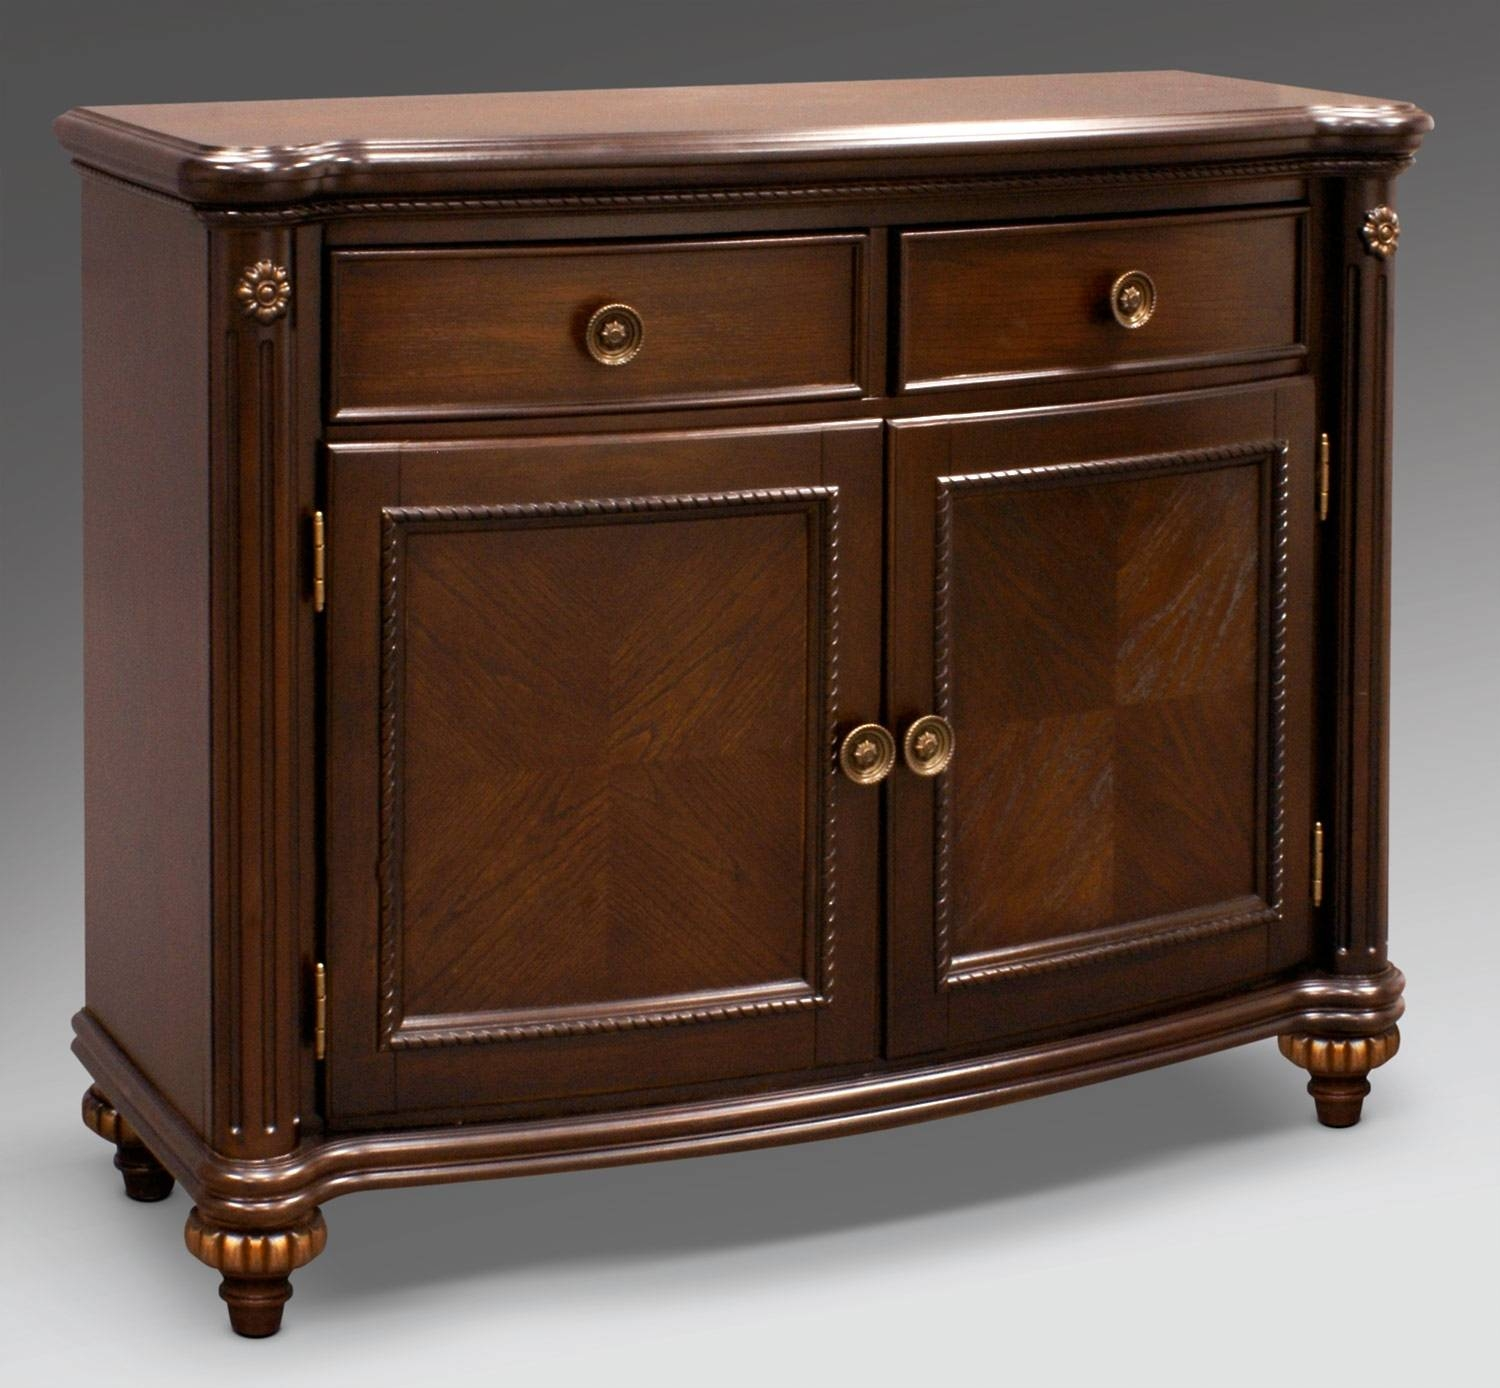 Dining Room Servers Buffet Furniture Pictures Cabinet Trends And Inside Thin Sideboards (View 4 of 15)